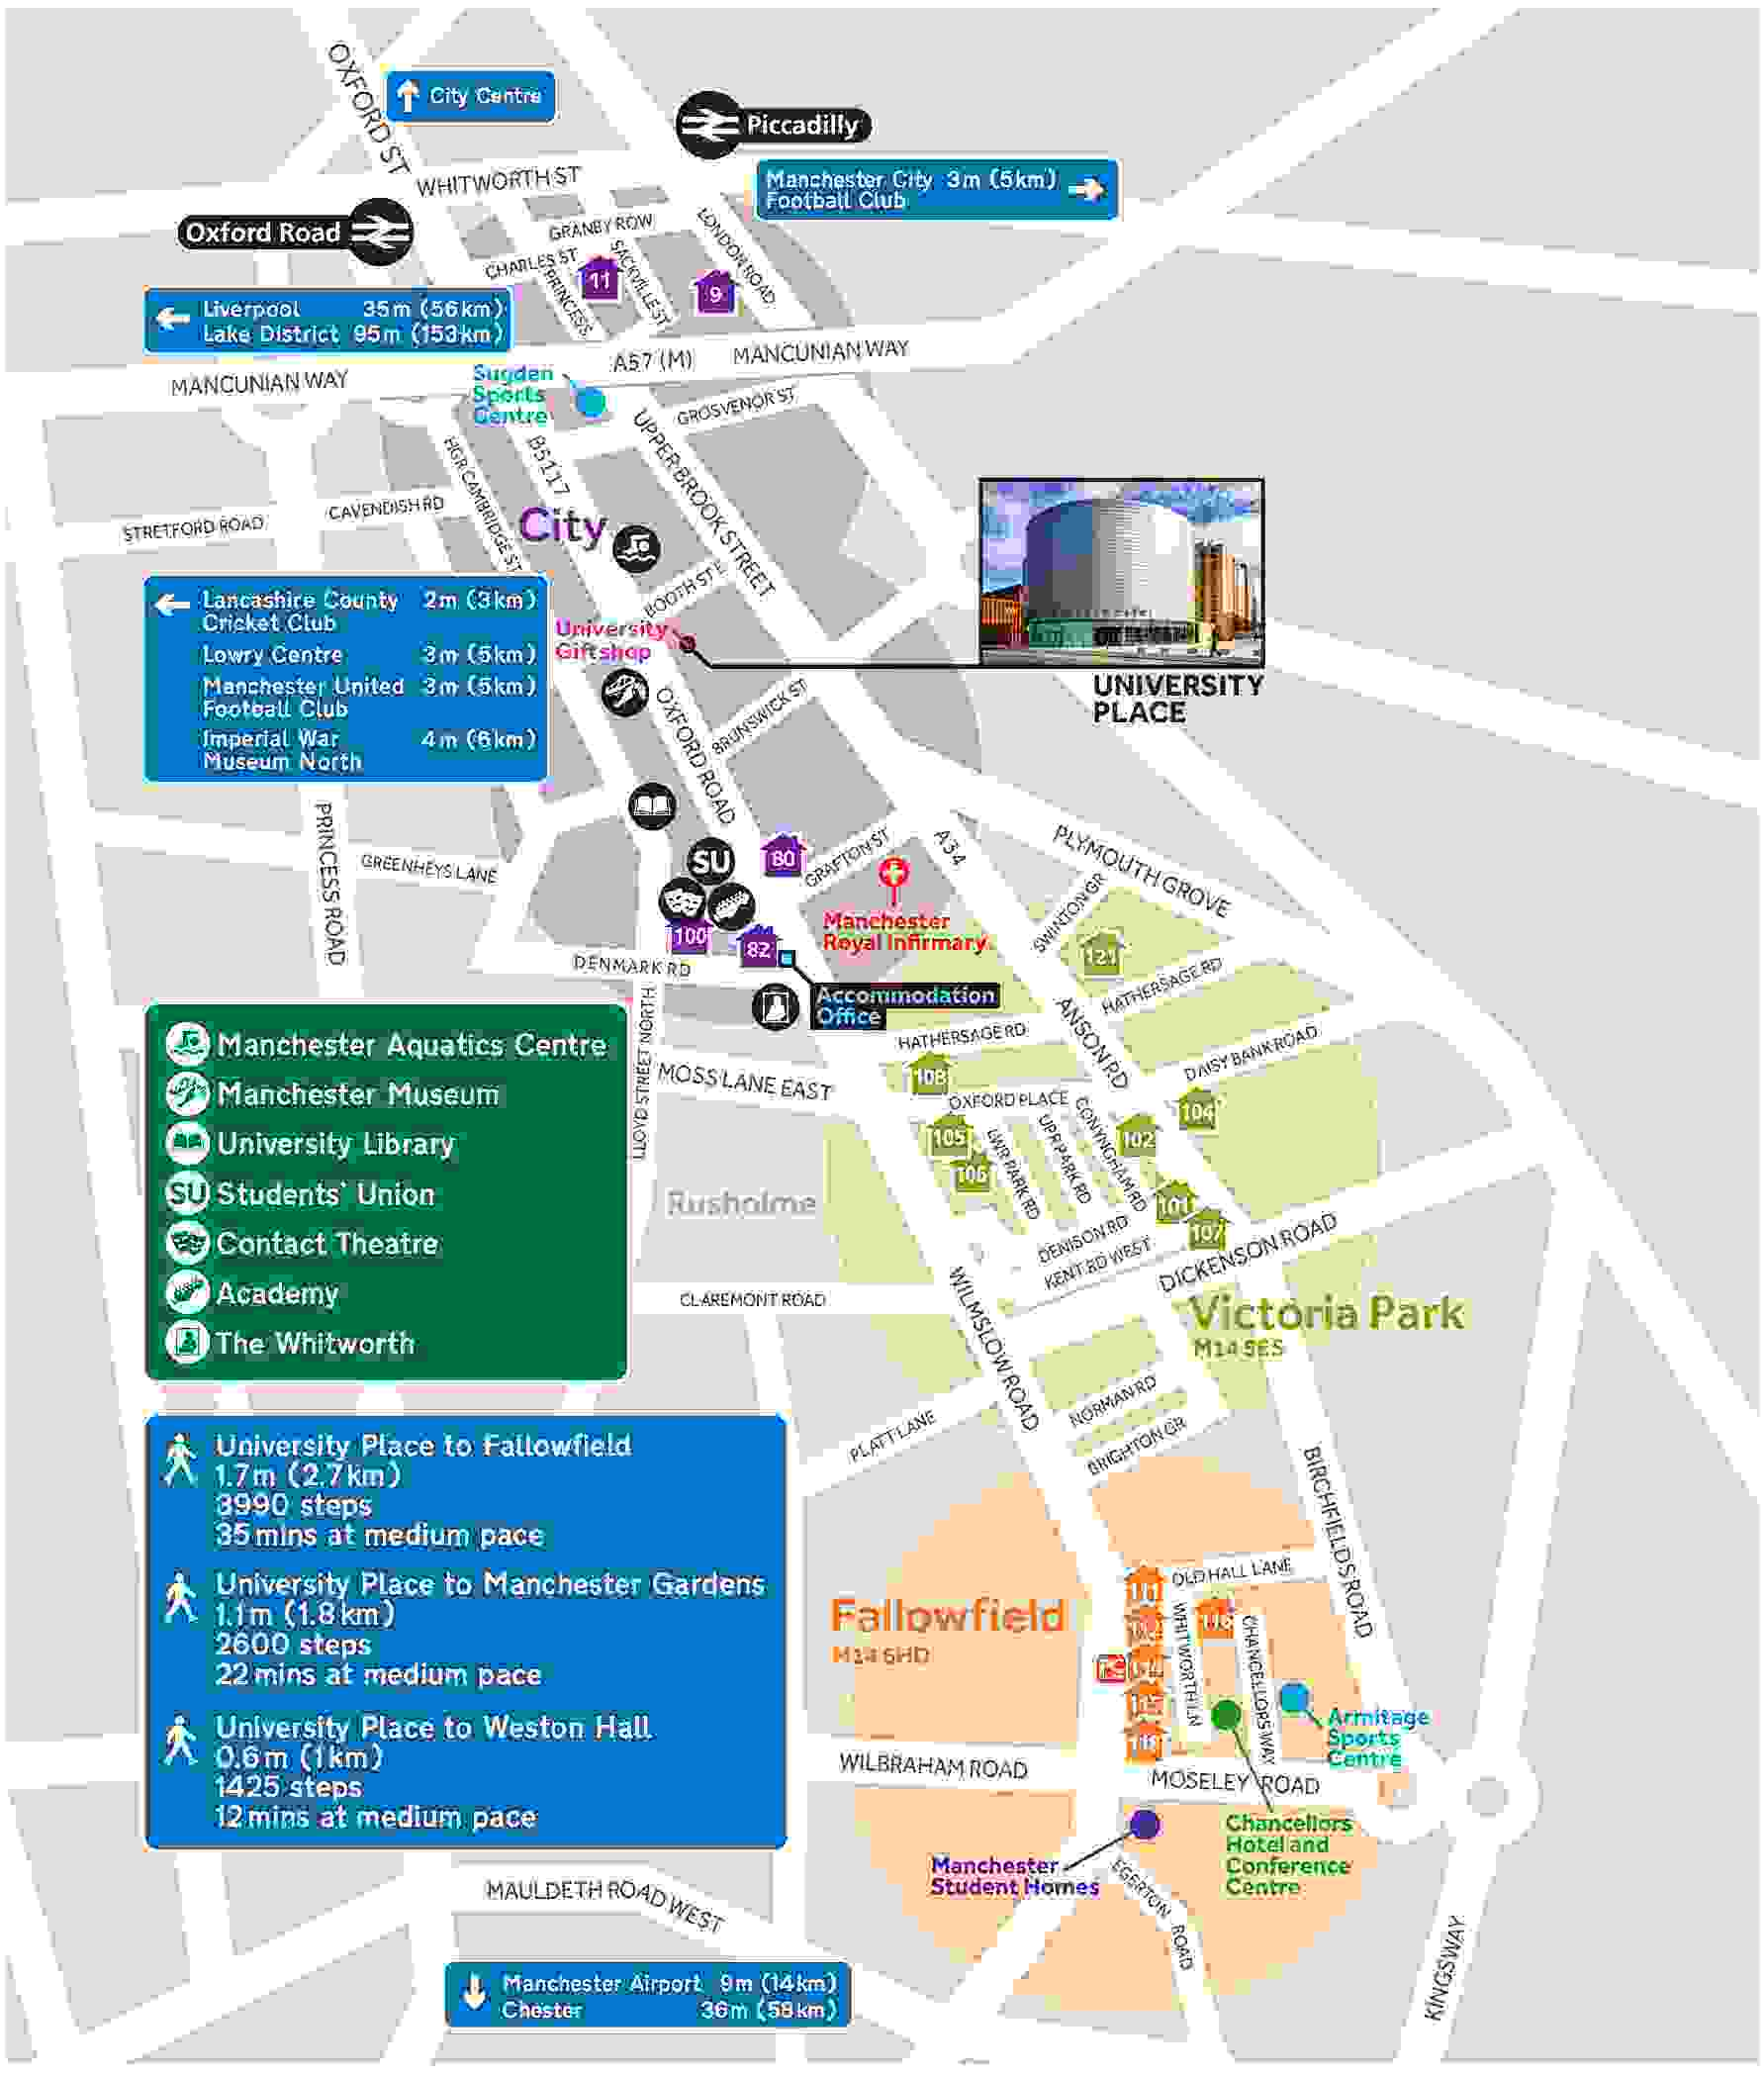 Manchester University Map University accommodation area guide | The University of Manchester